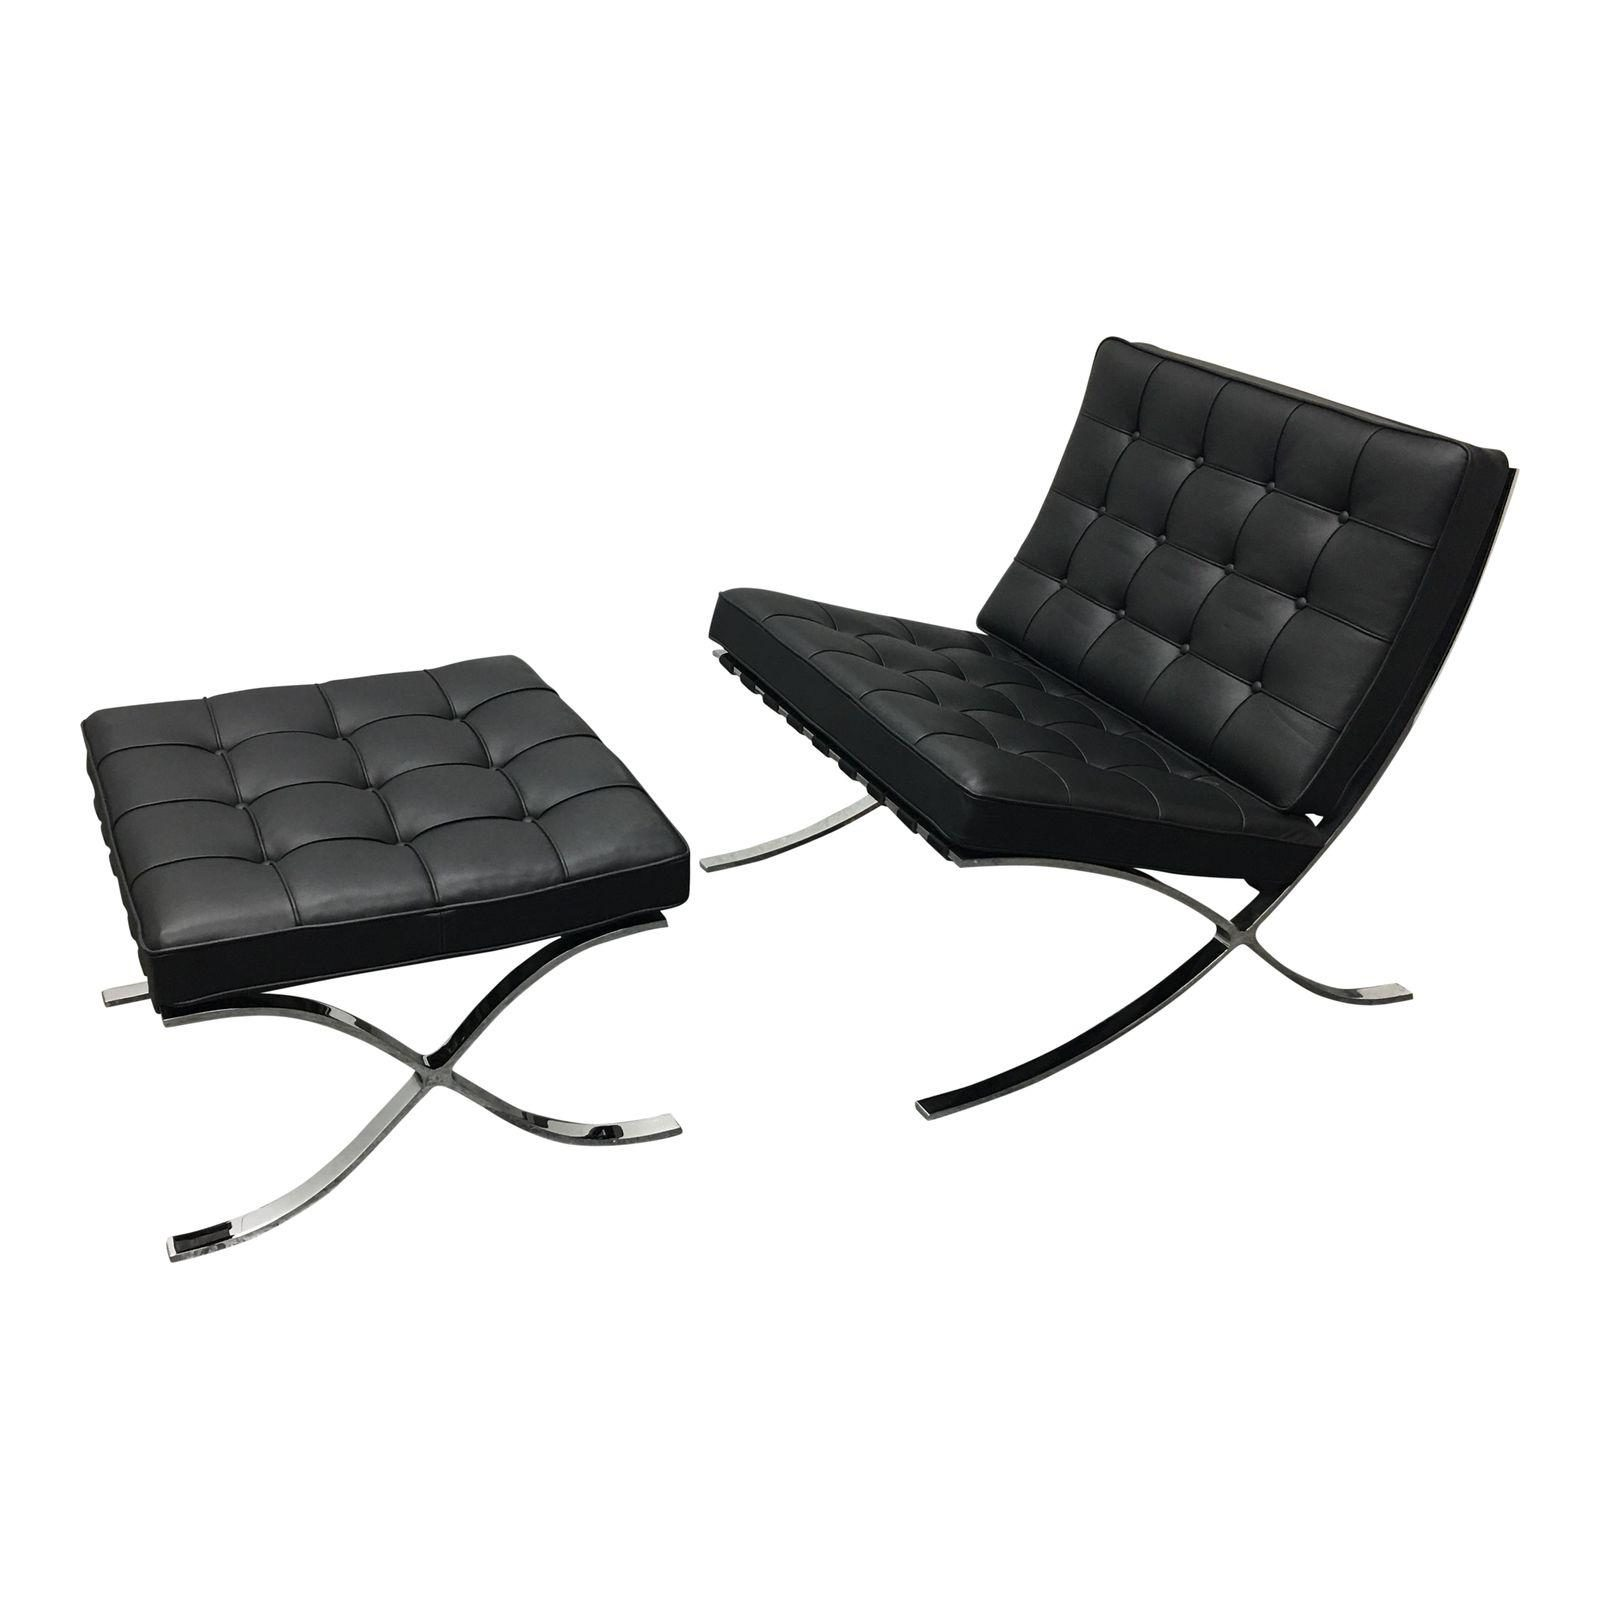 barcelona chair with ottoman original price 8 design plus gallery. Black Bedroom Furniture Sets. Home Design Ideas